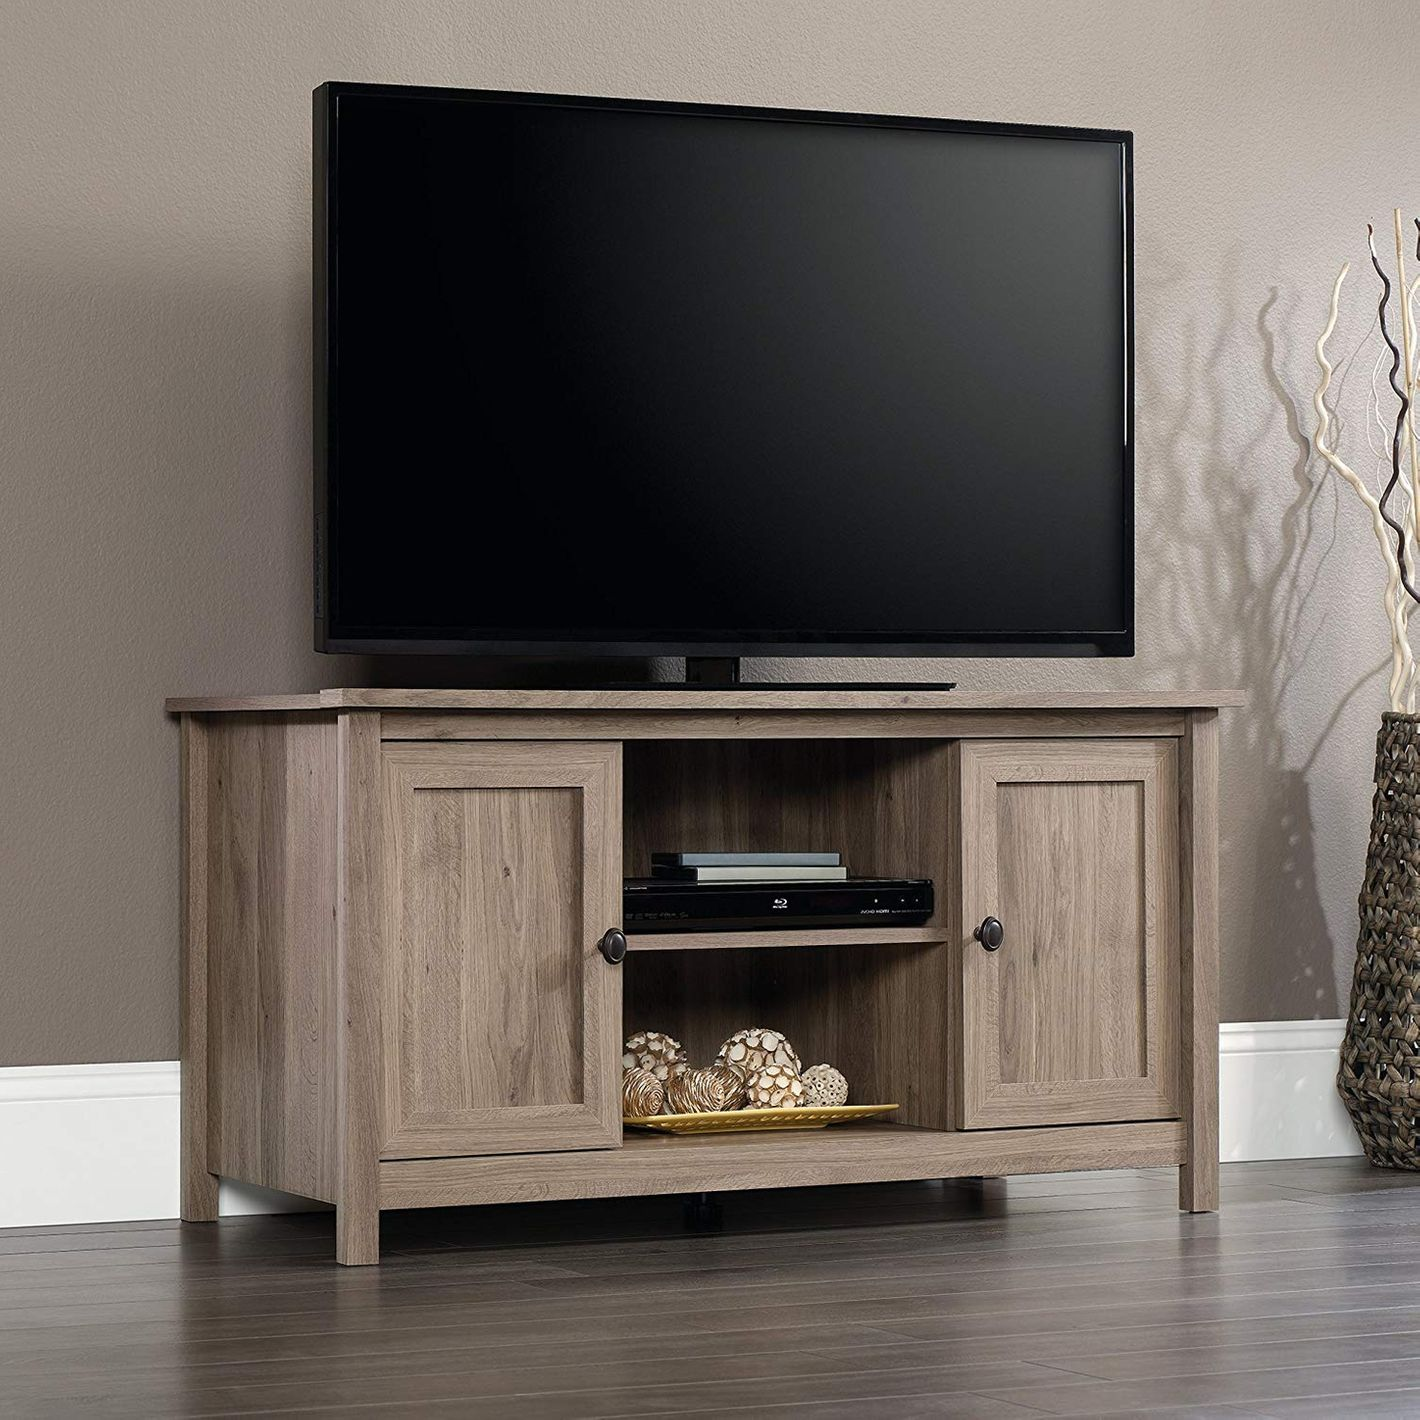 Sauder County Line Panel Tv Stand For S Up To 47 Salt Oak Finish